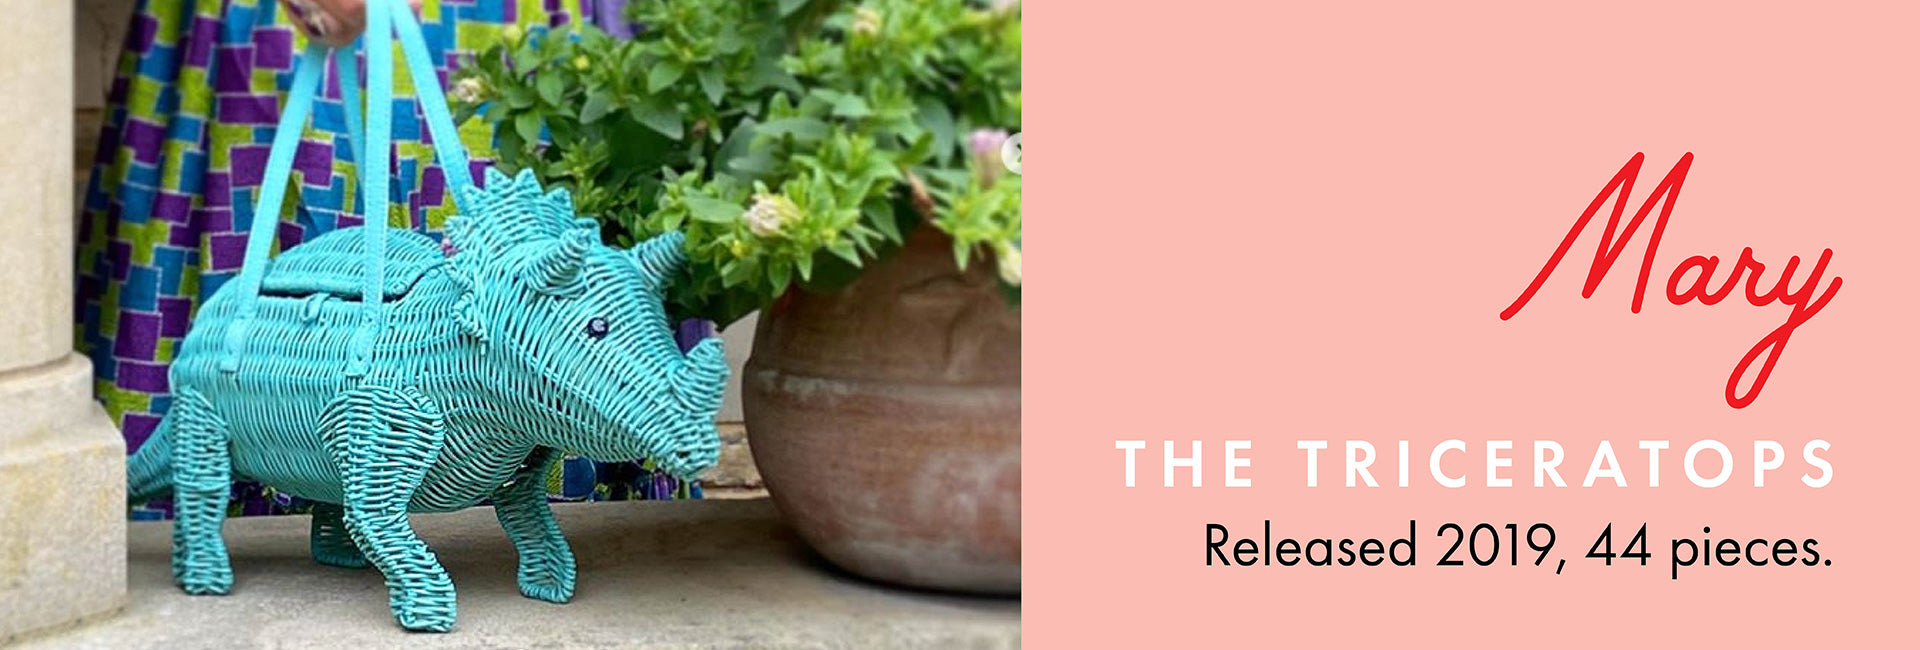 Mary the triceratops. Released 2019, 44 pieces.